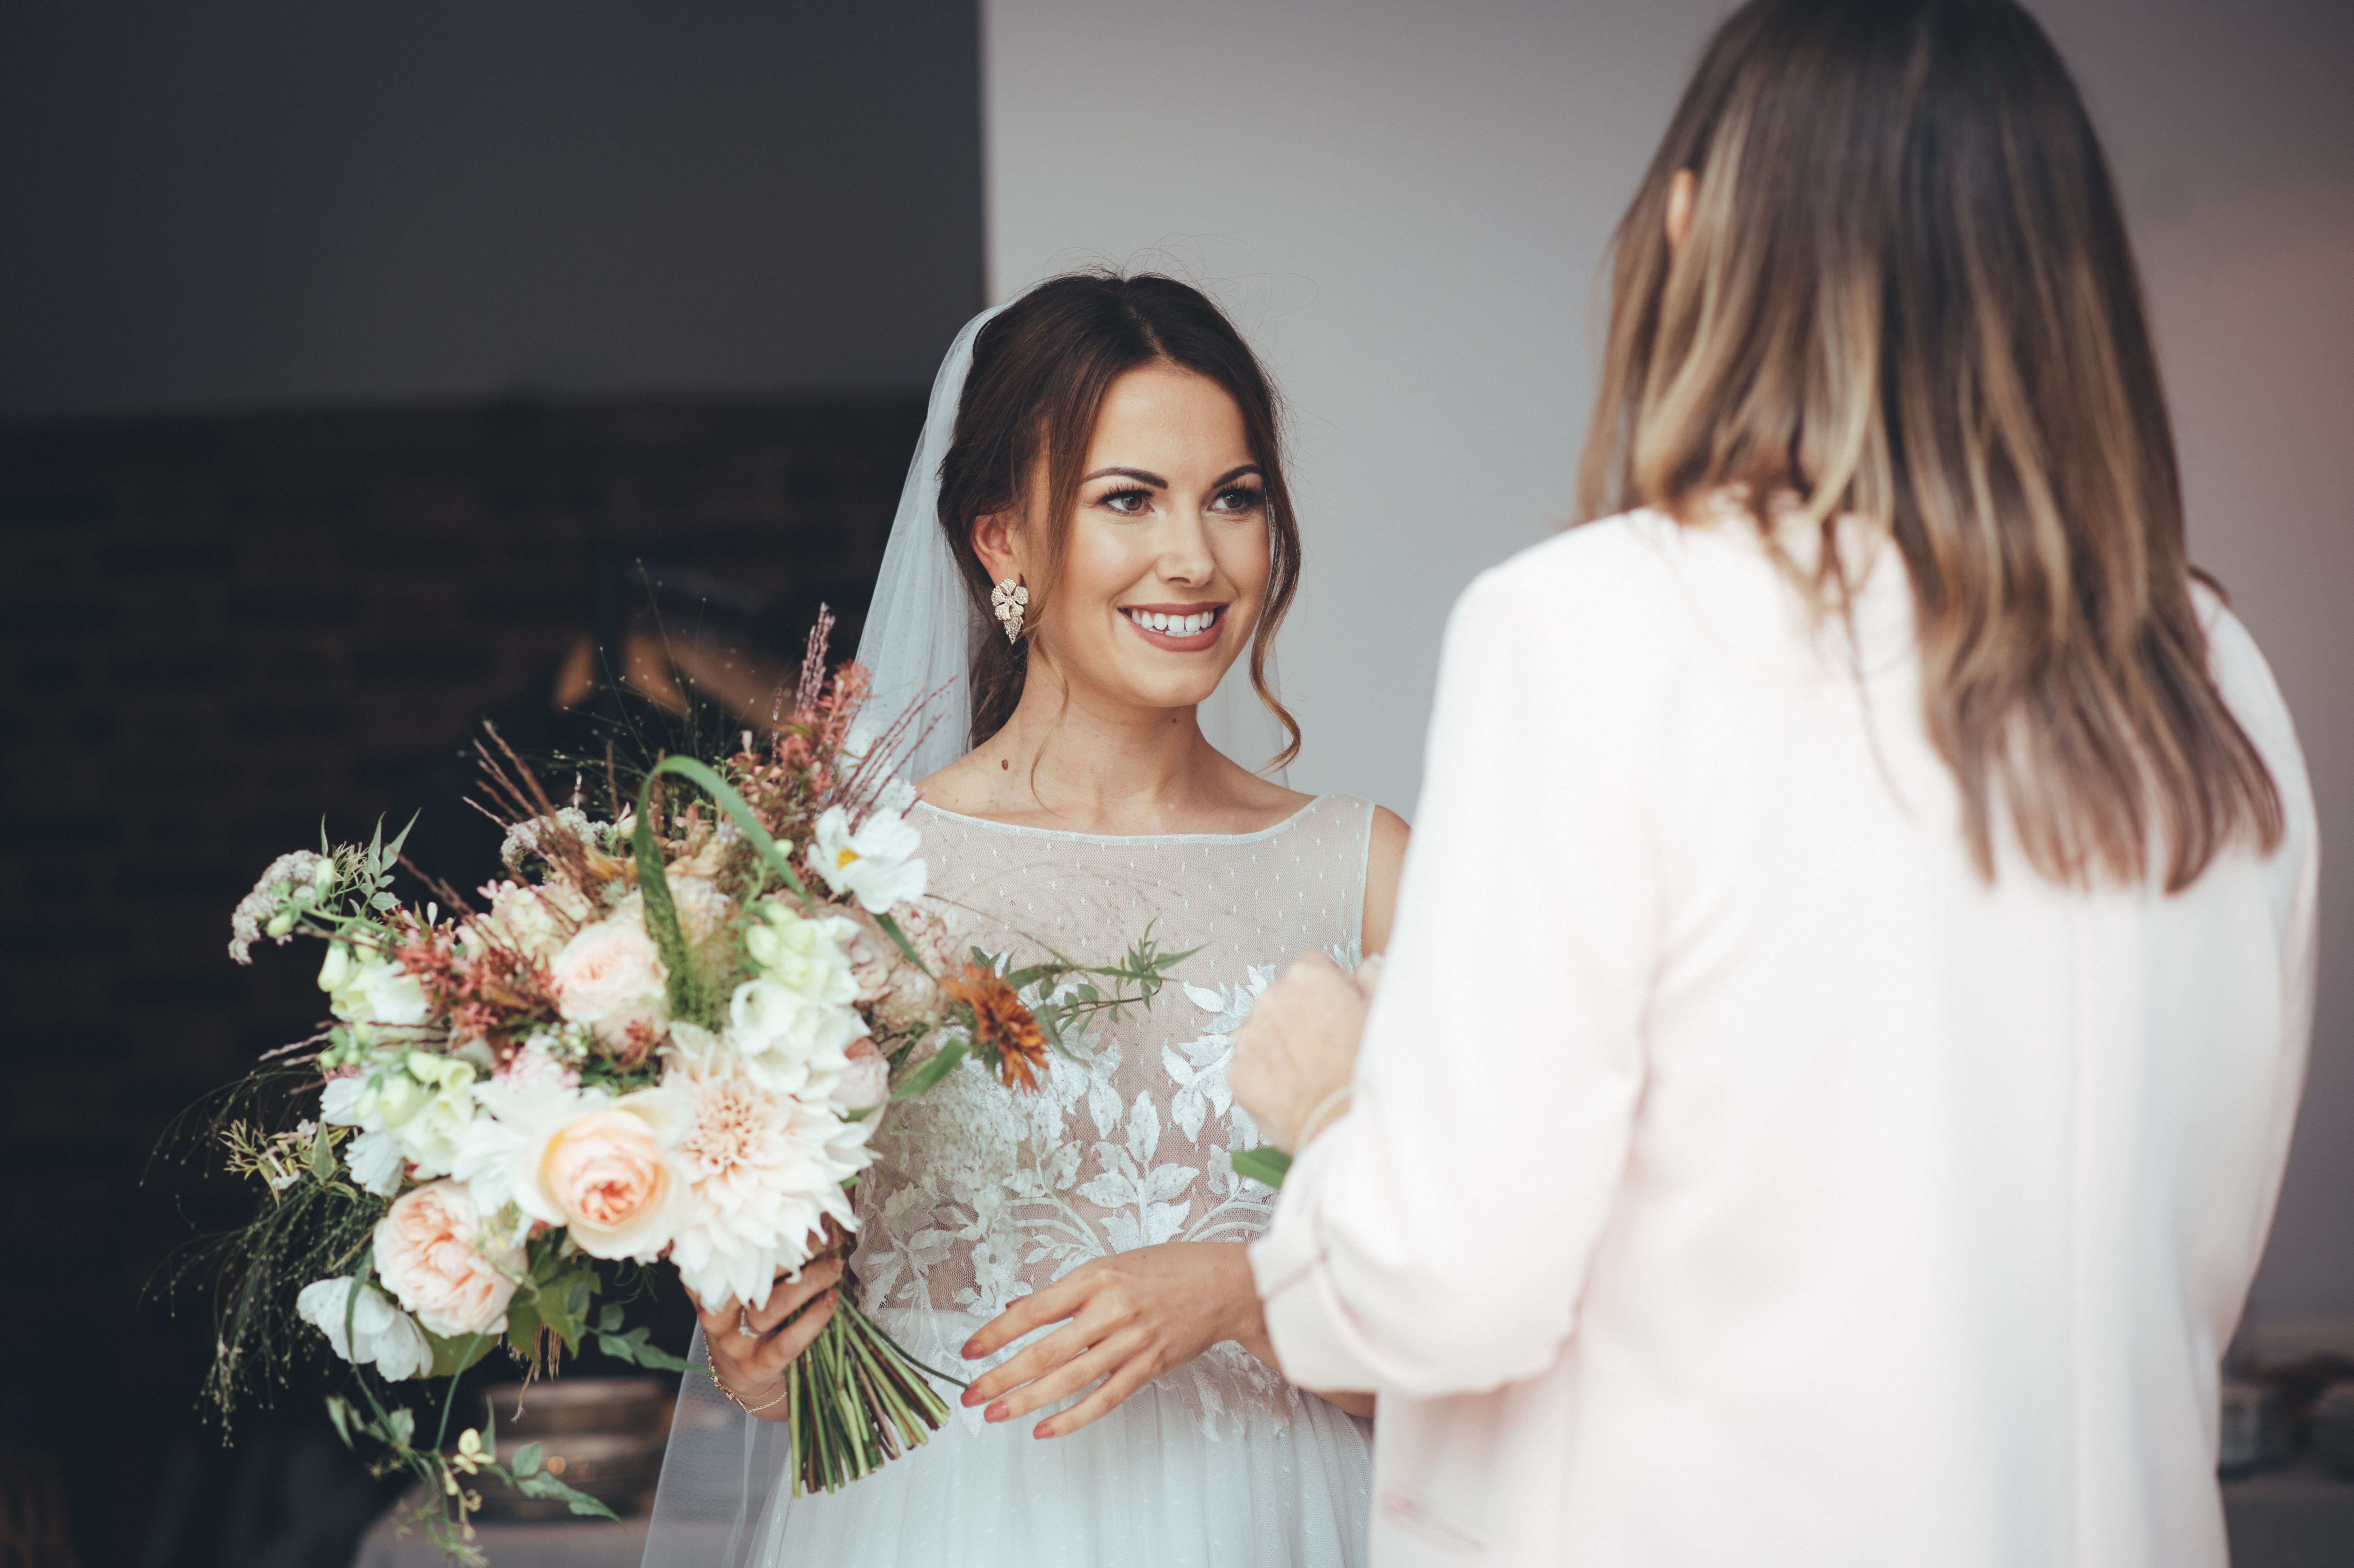 A wedding planner will be on hand to offer support and guidance throughout the day.